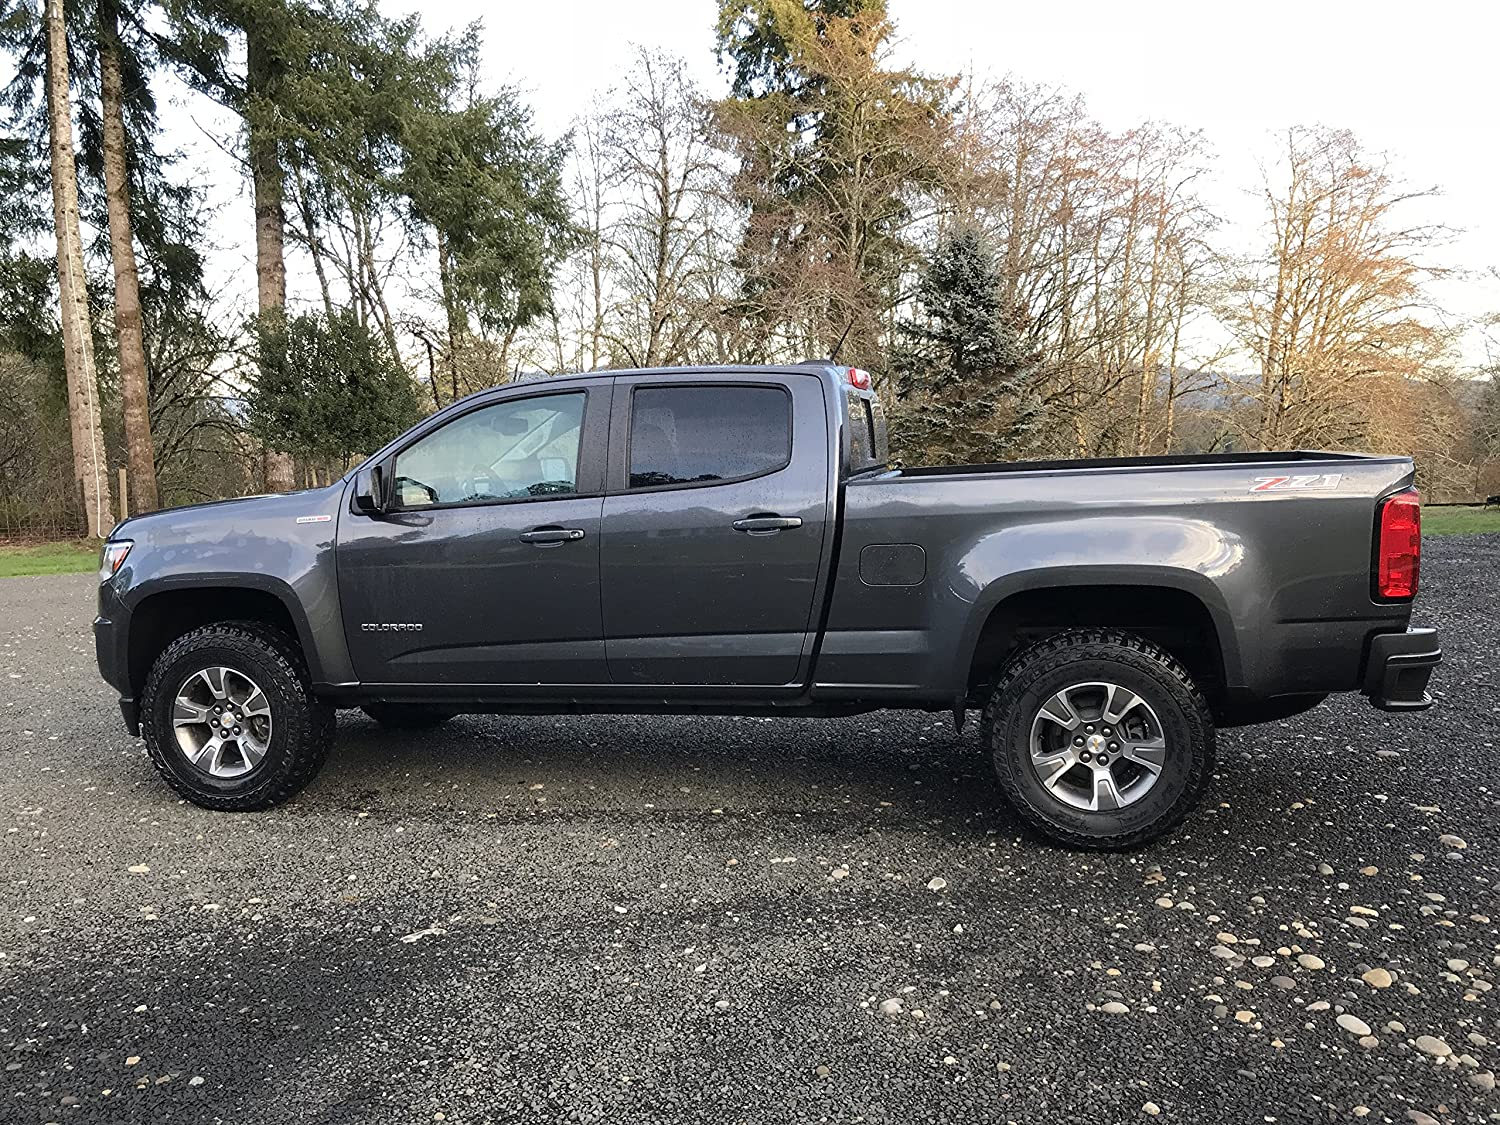 Lifted Chevy Colorado >> Truxxx 403035 3 Lift Kit Compatible With 2015 2019 Chevy Colorado Gmc Canyon 2wd 4x4 4wd Including Diesel